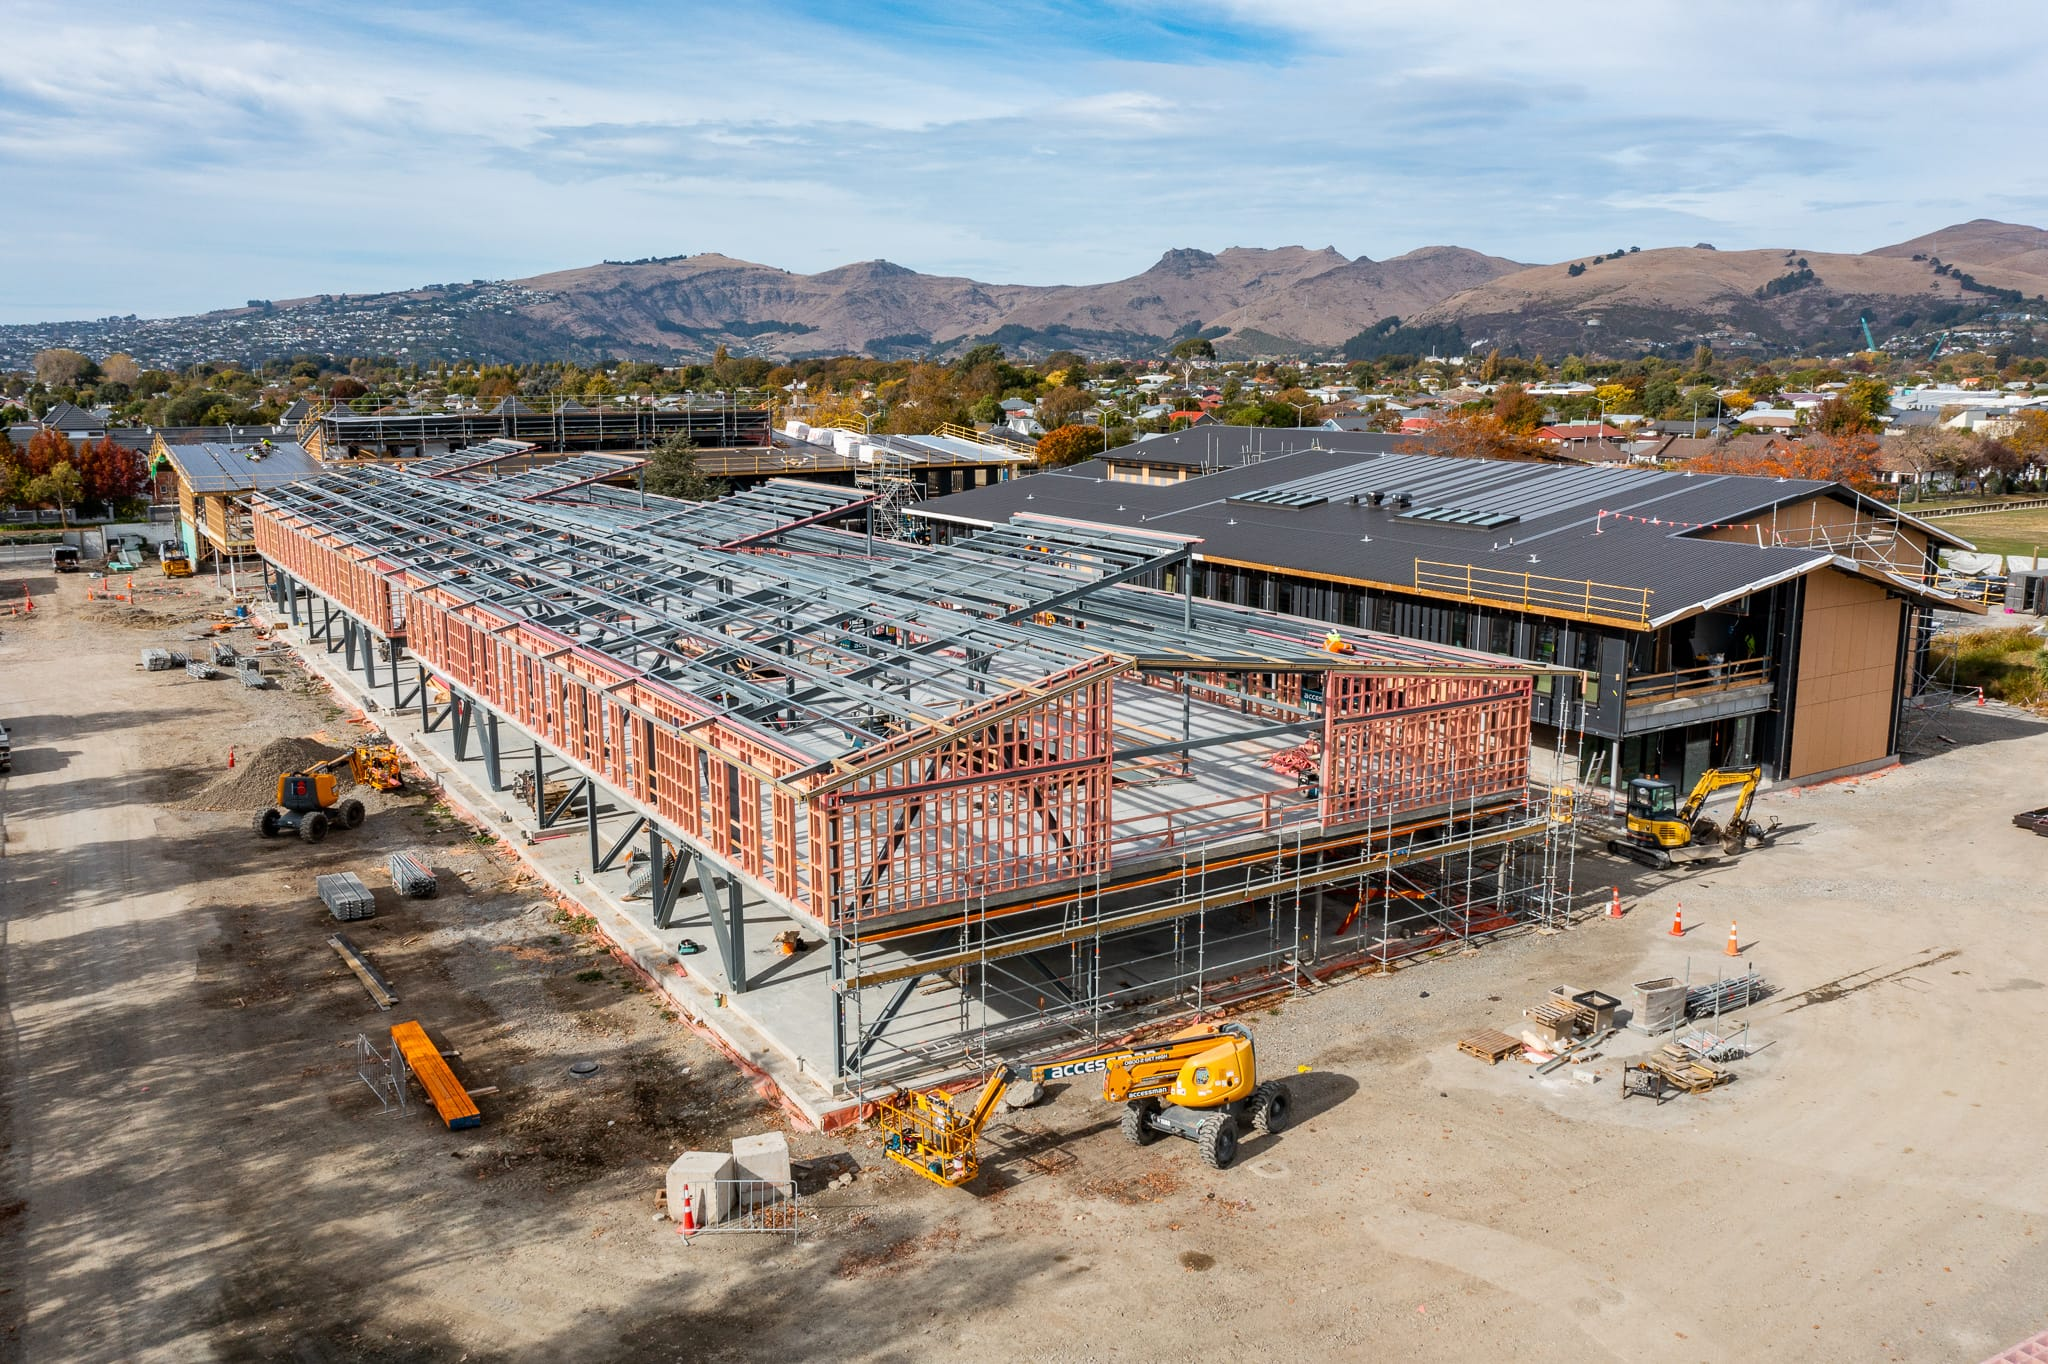 vip_structural_steel_linwood_college_23:4:21_small_38